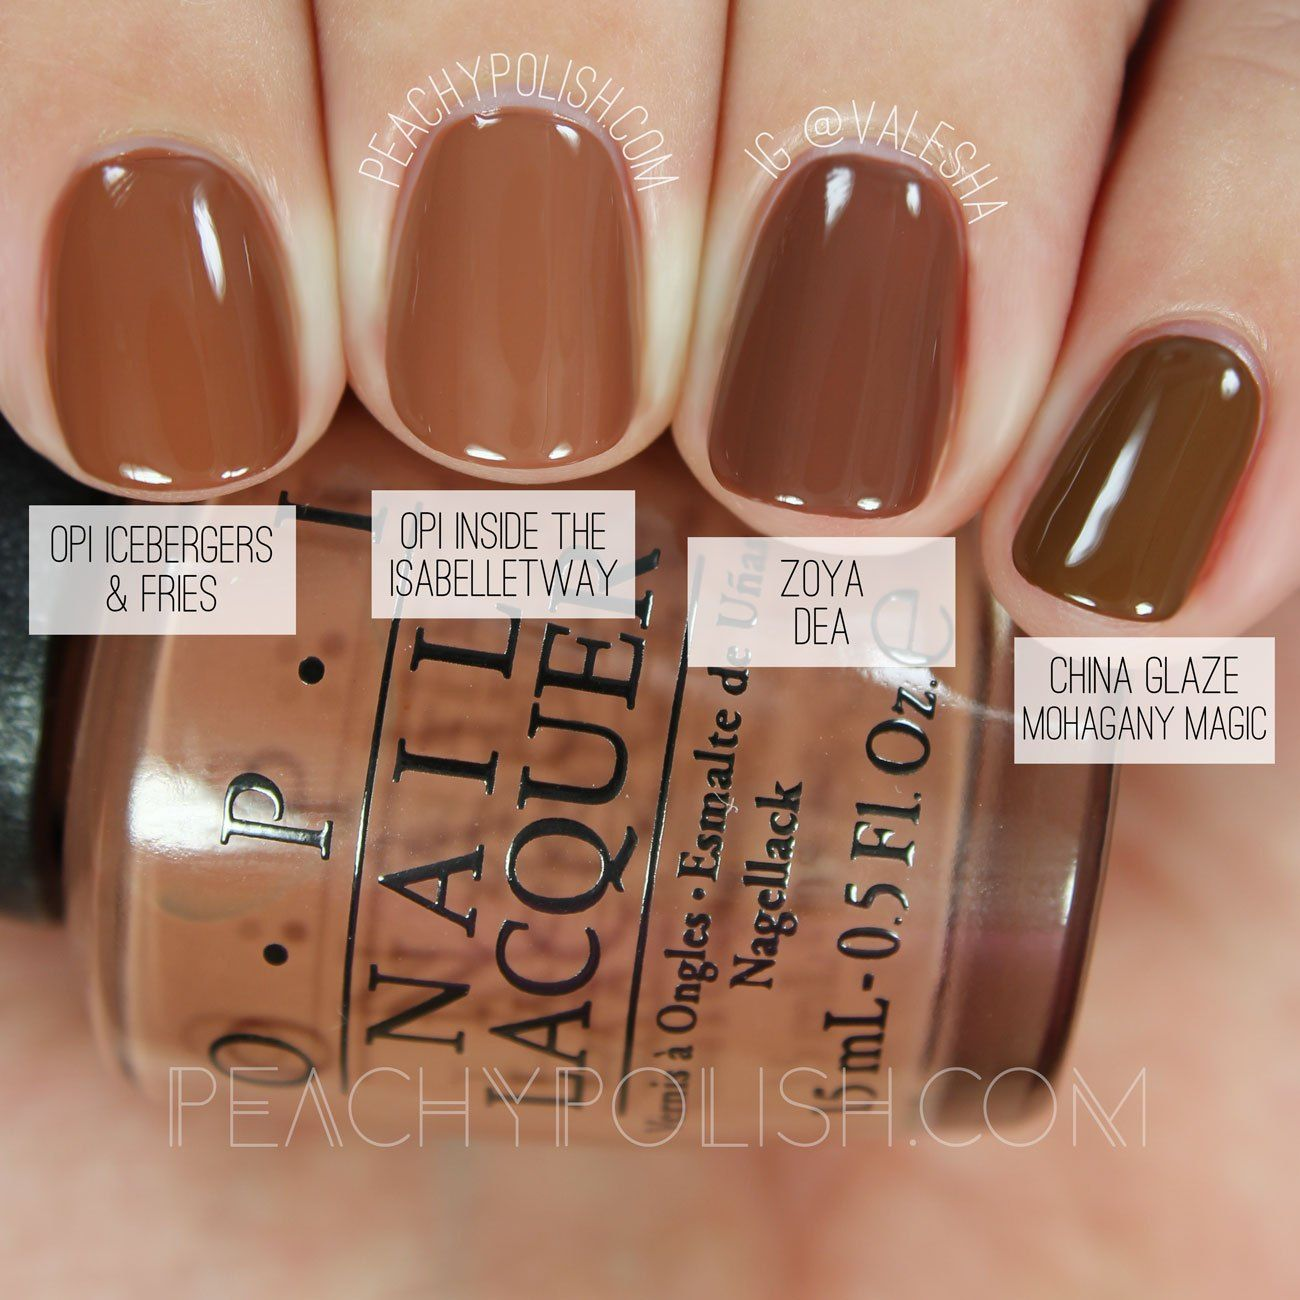 Opi Inside The Isabelletway Washington D C Collection Comparisons Peachy Polish How To Do Nails Brown Nails Nail Polish